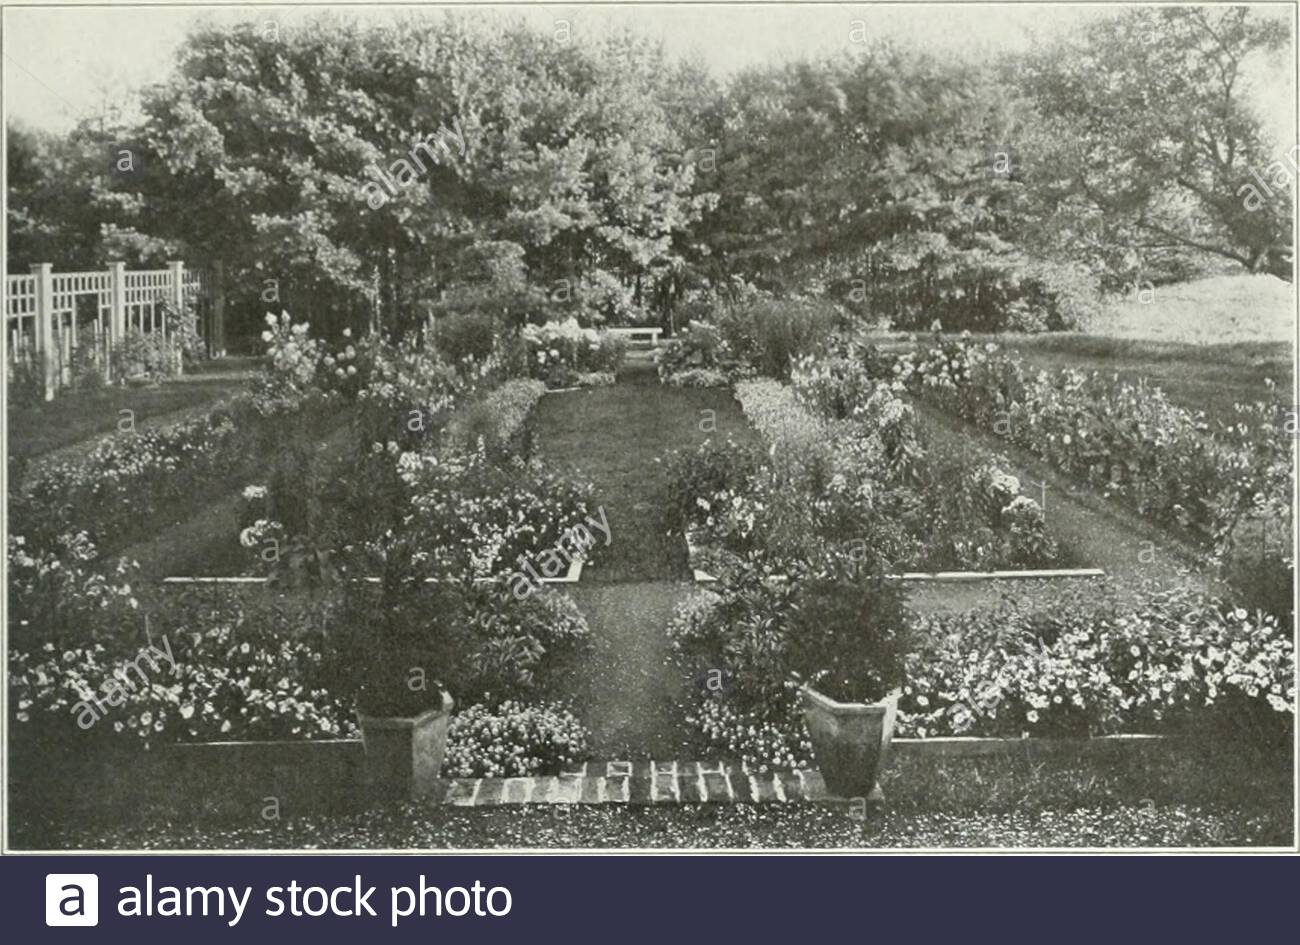 beautiful gardens in america from a photograph by jessie tarbox beals cornish n h stephen parrish esq fron d photograph by jcnic tarhgt bca cornish n h mrs william h hyde 2AJ0KW0